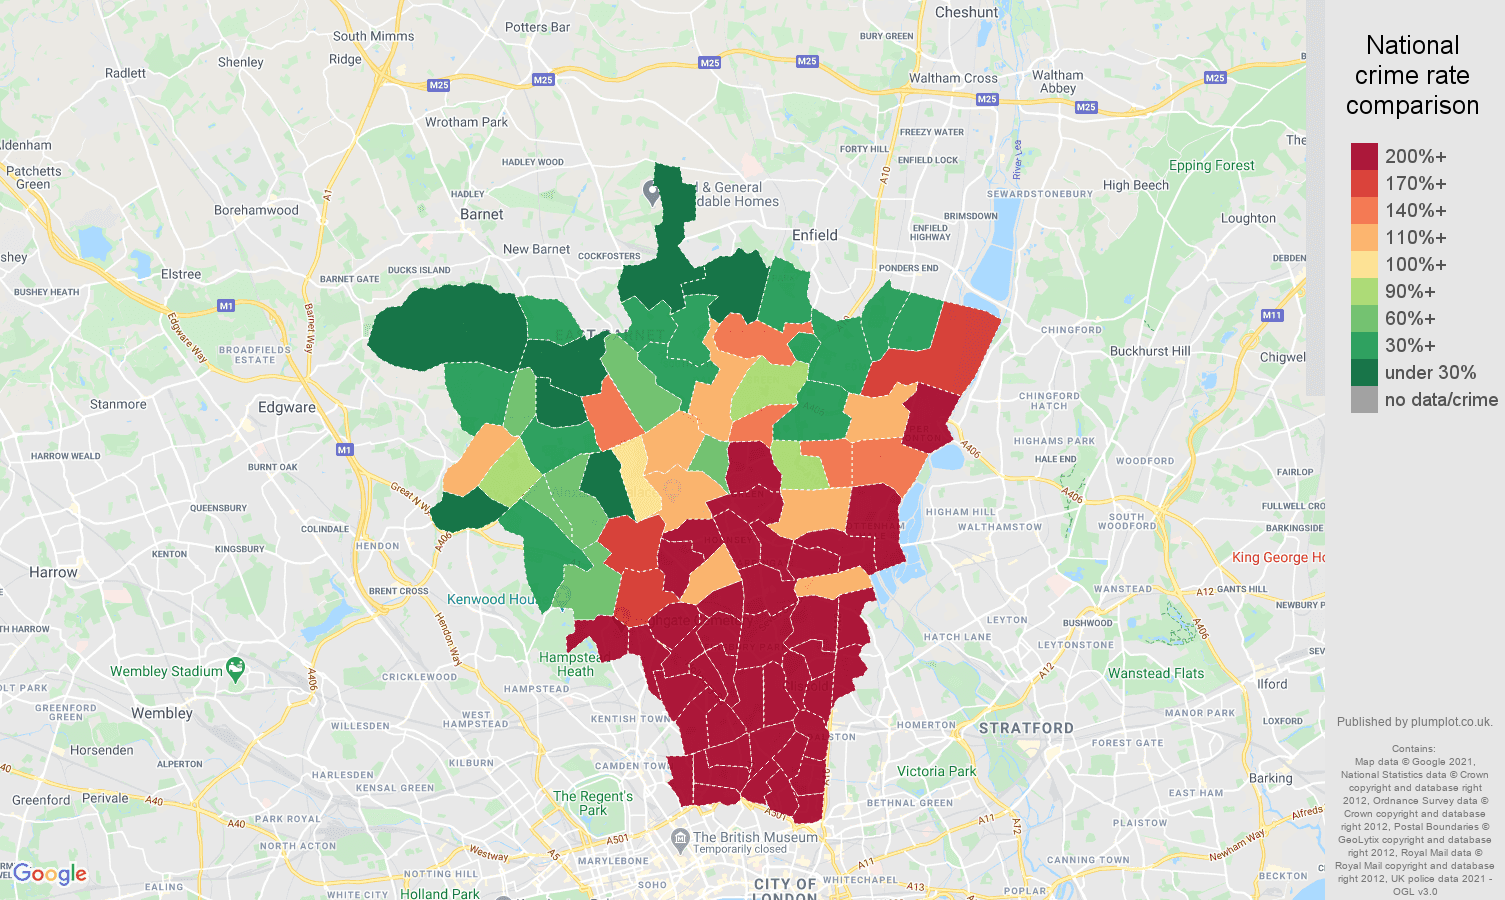 North London bicycle theft crime rate comparison map